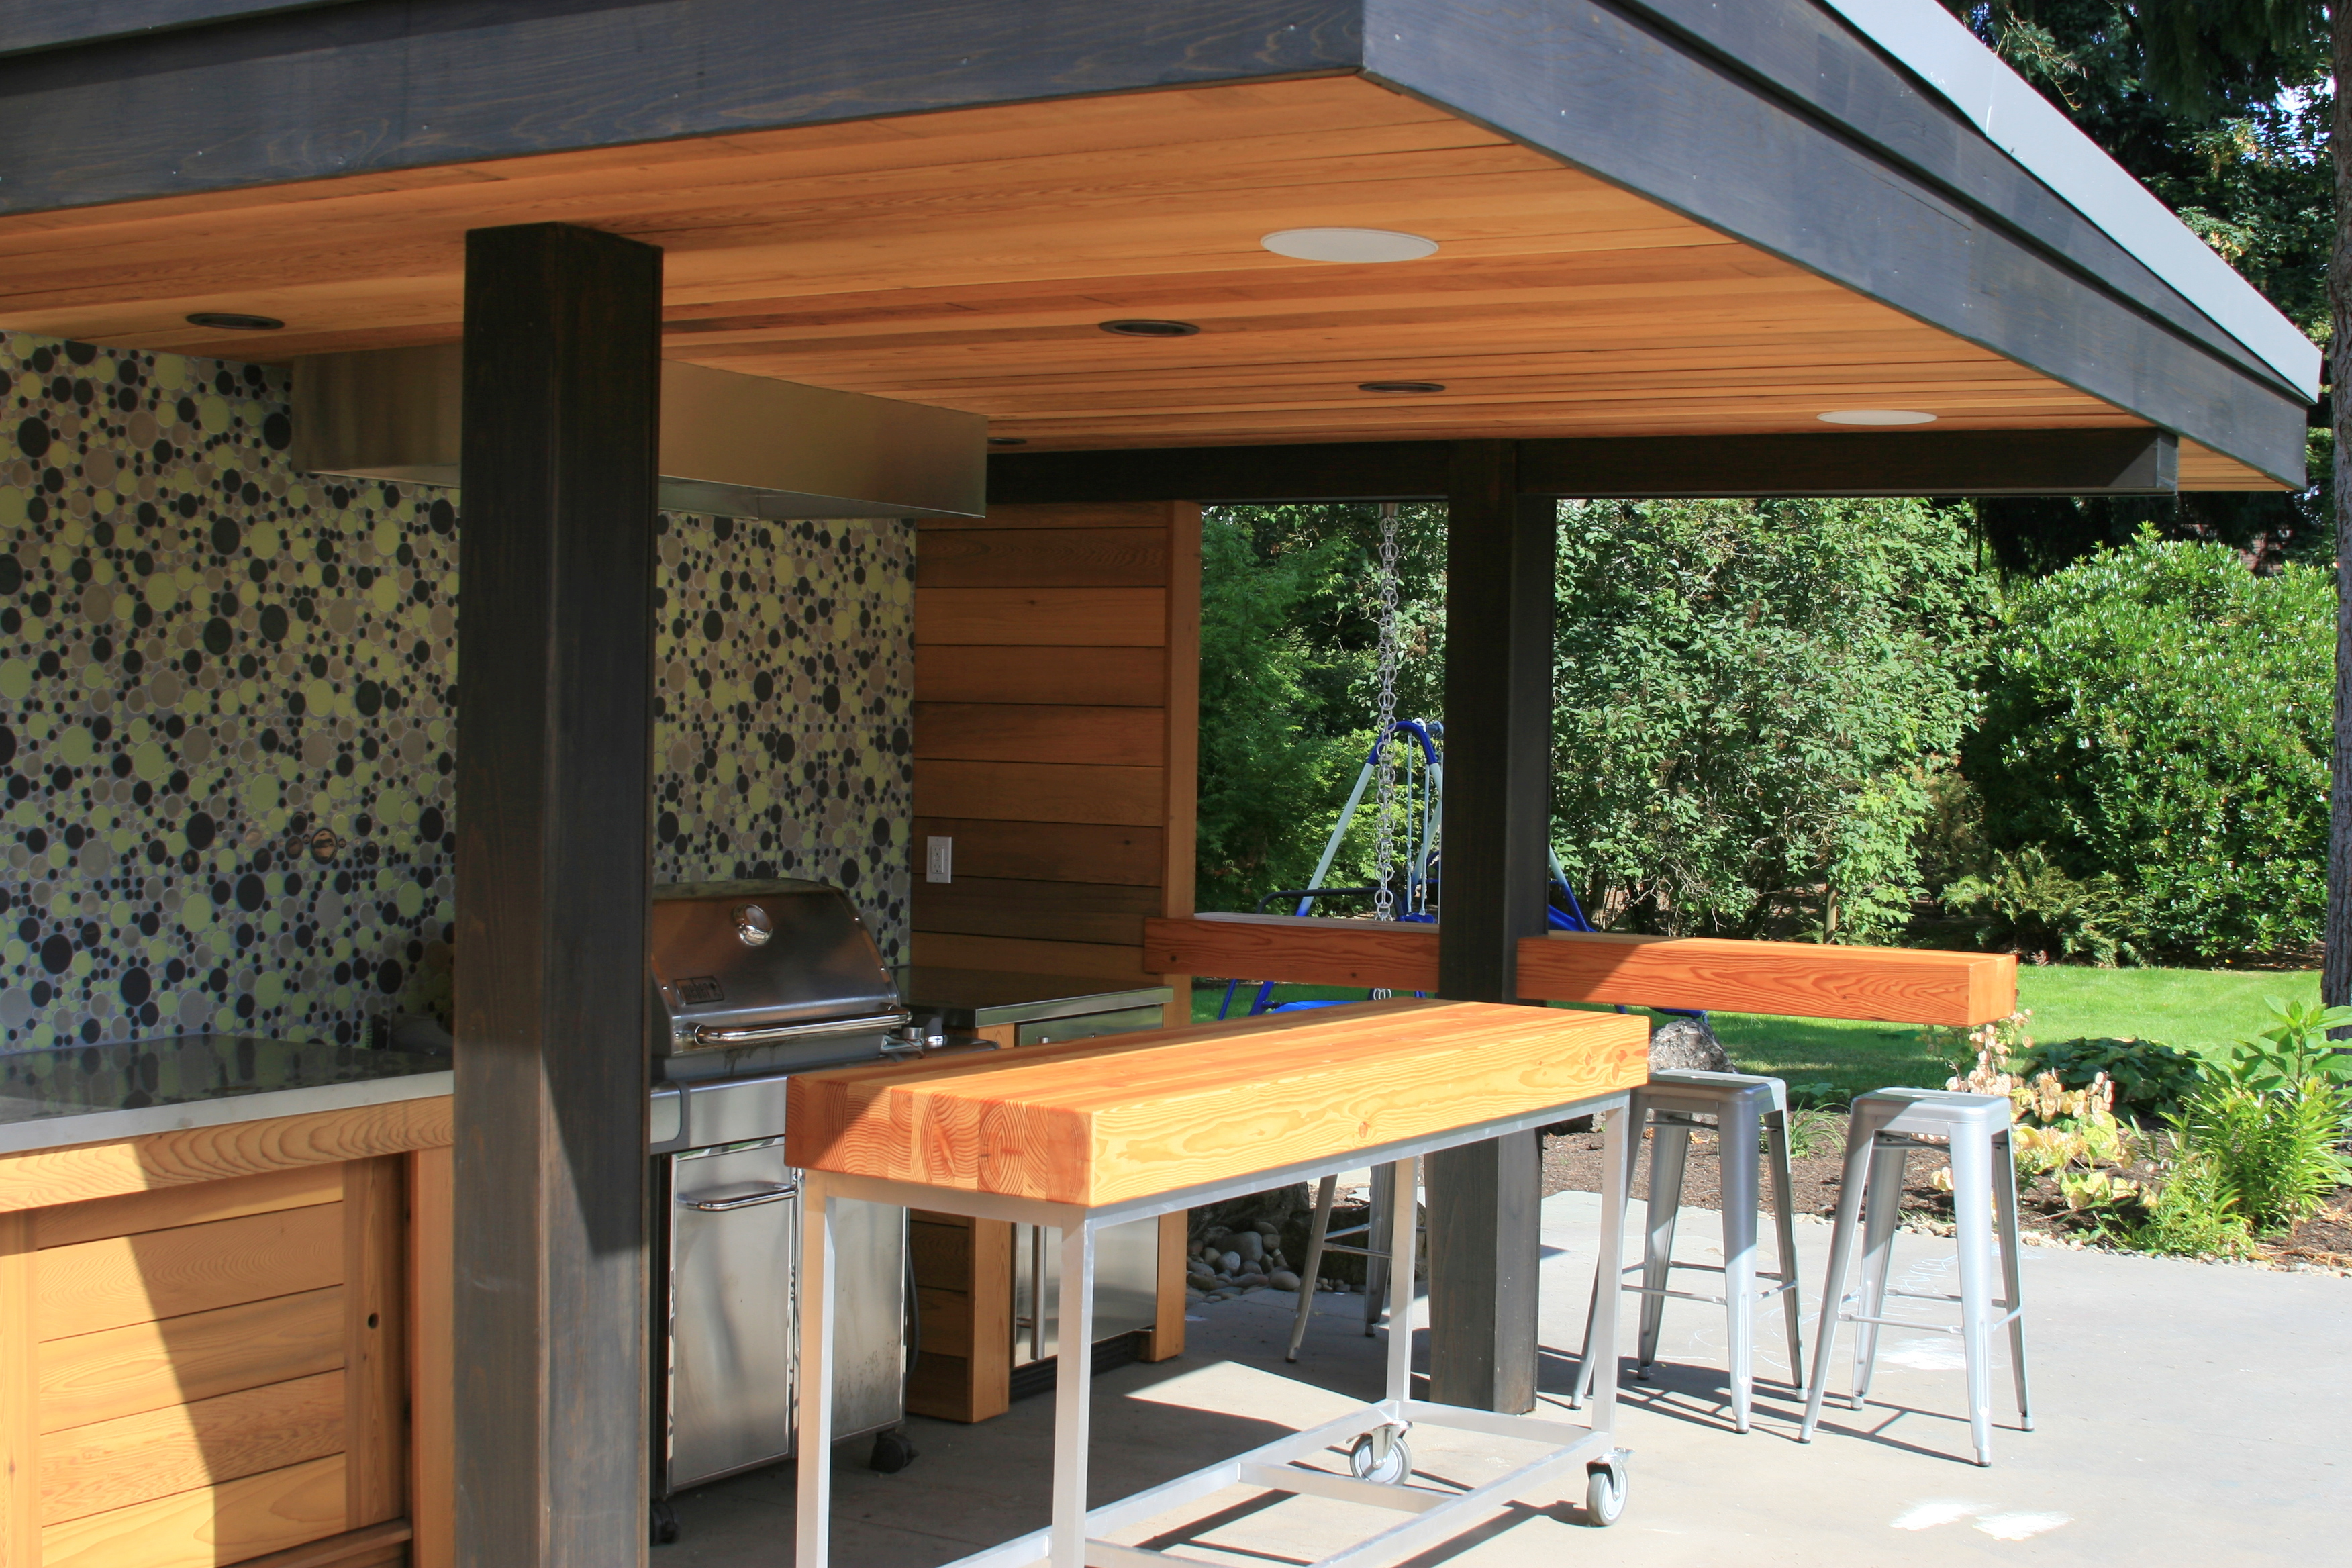 10 Steps to a Perfect Outdoor Kitchen | Inside Arciform on Patio Kitchen id=49222